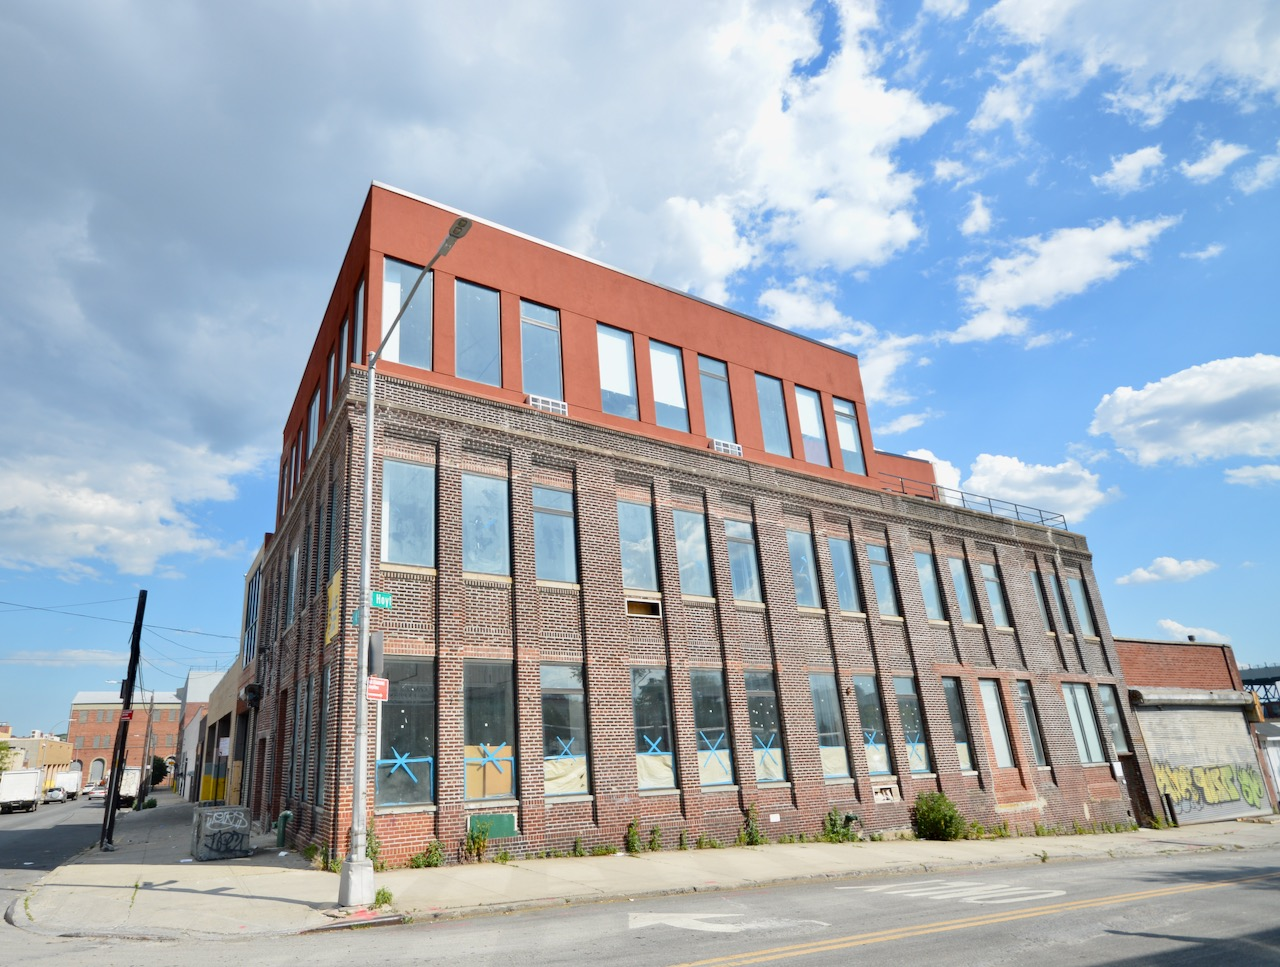 At the crossroads of Carroll Gardens and Gowanus is 425 Hoyt Street, a 24,000 sf industrial warehouse that has been transformed for today's commercial needs. Built in 1931 and recently renovated, this 3 story, corner brick building is the hot property in the area. 425 Hoyt Street is a stunning transformation that has been outfitted with all new mechanicals, oversized casement windows, and a large steel case passenger elevator. There is a large loading dock on the Hoyt Street side with an overhead door, and a large drive in garage on 4th Street. The building's new roof offers panoramic views of Brooklyn, the Gowanus Canal, and the large new Gowanus Park located a stone's throw from the Hoyt Street side of the property. Poured concrete floors and a mixture of the buildings industrial past and new sleek renovations fuse the old and new seamlessly. New oversized skylights flood the interior with light. In addition to the expansive roof of the building there is a large second floor outdoor space framed by huge steel case windows. A new large capacity passenger elevator connects all floors.  The property is an ideal fit for film and tv production, and is easily accessible by train and highway. Smith Street is only 1 block away which has a great mix of all the types of businesses that have made Brooklyn what it is today. Because of its size, the building would work well for high end office space, film and tv production, a school, or a high end manufacturing operation with a retail component.  As office space, the building would work well for everything from a tech firm, to a corporate office looking to escape the daily grind and close quarters of Manhattan.  Shown by appointment.  Broker's welcome! 3 Story Corner Brick Factory Building with New Elevator Renovated for Todays Commercial Office and Production Needs Delivered Vacant